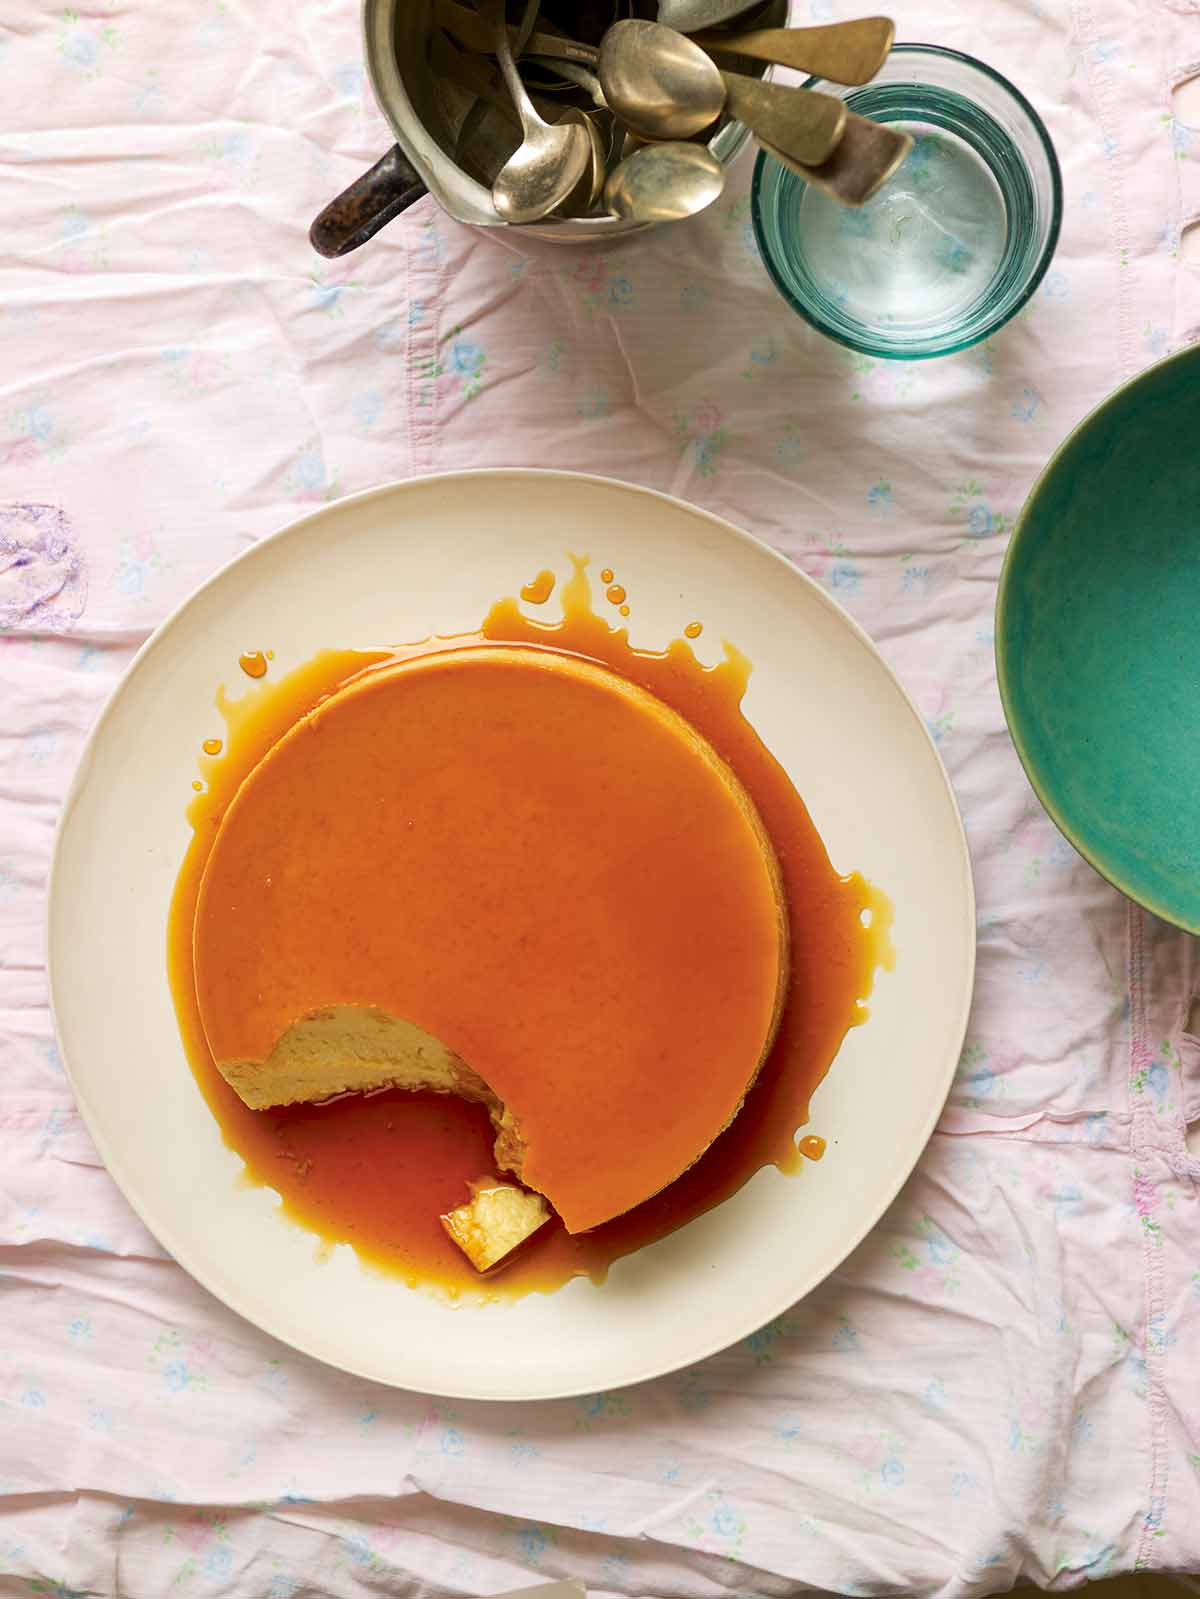 A classic flan de leche on a white plate, covered with caramel and a spoonful of custard missing from the flan.